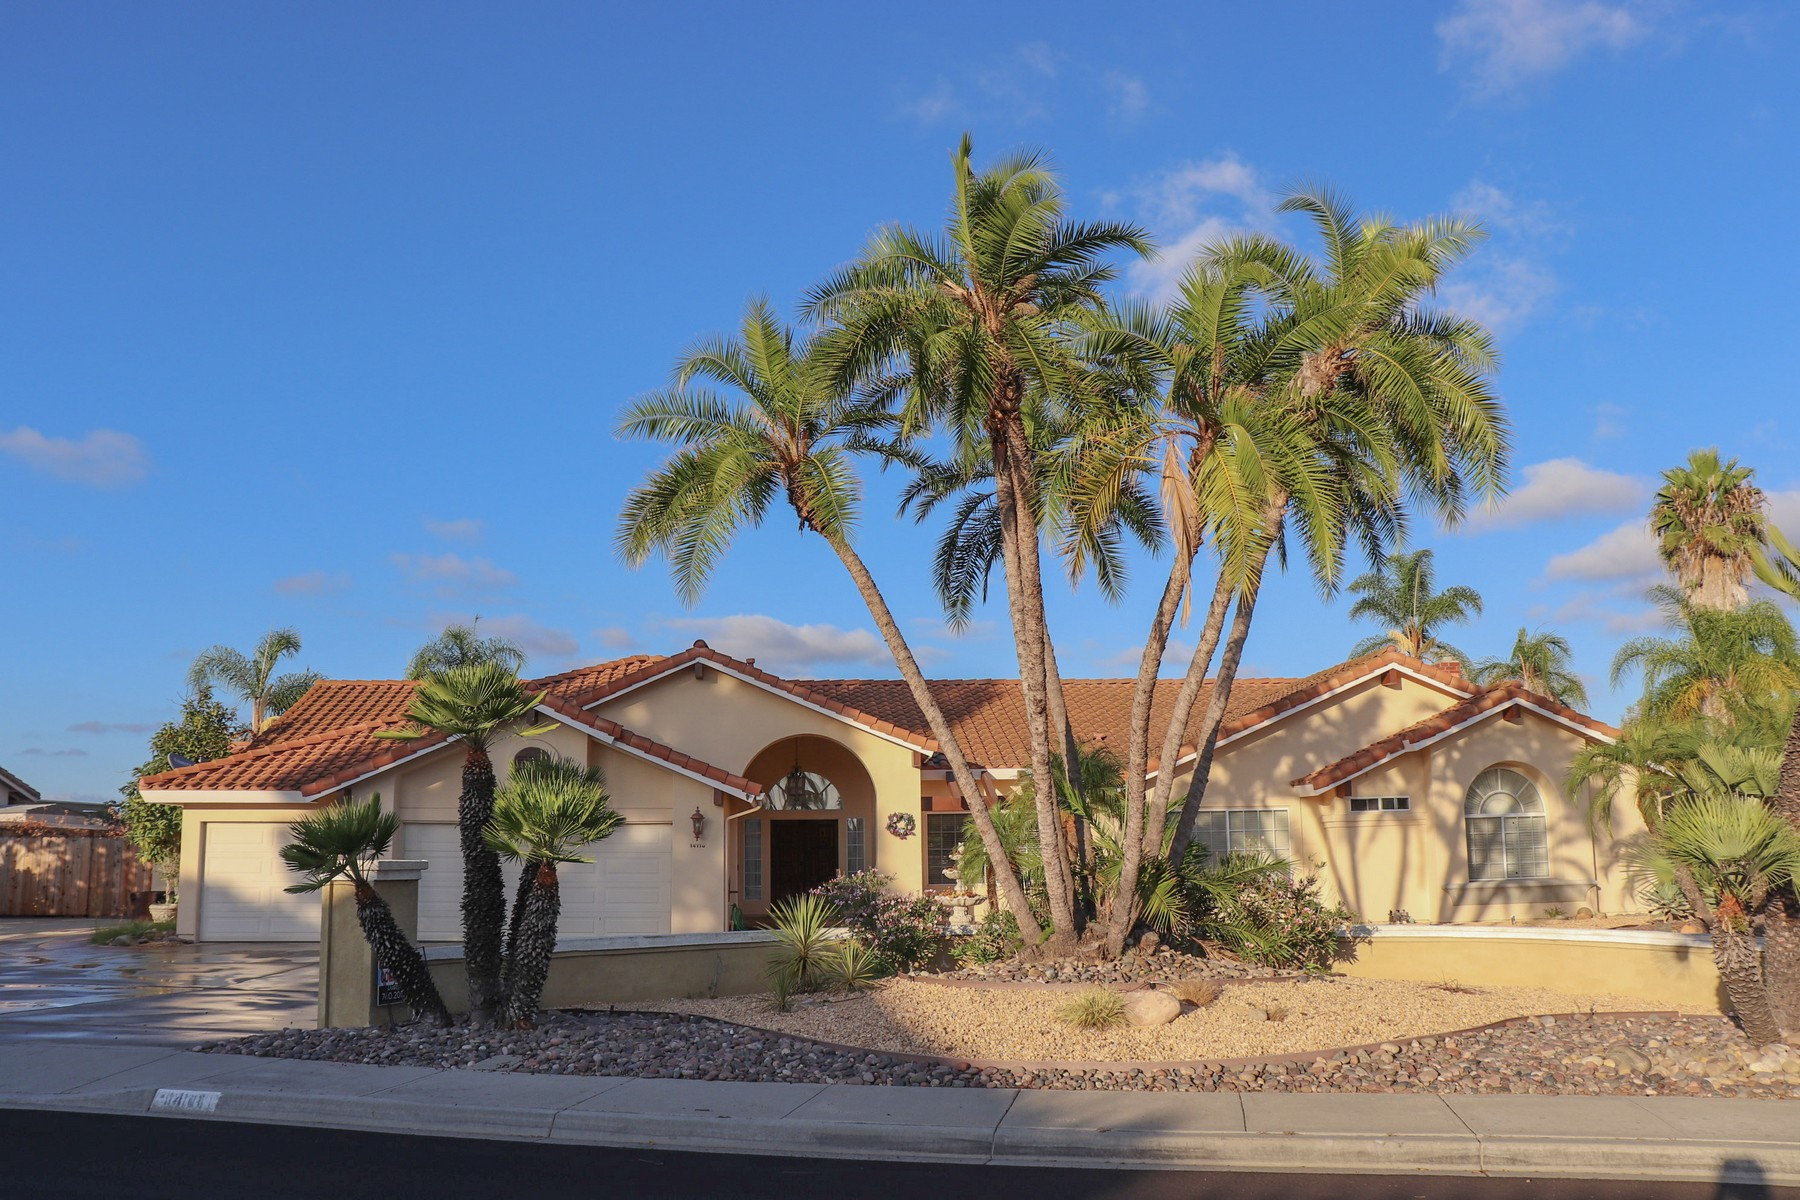 Single Family Homes for Sale at 14110 Palisades Drive Poway, California 92064 United States